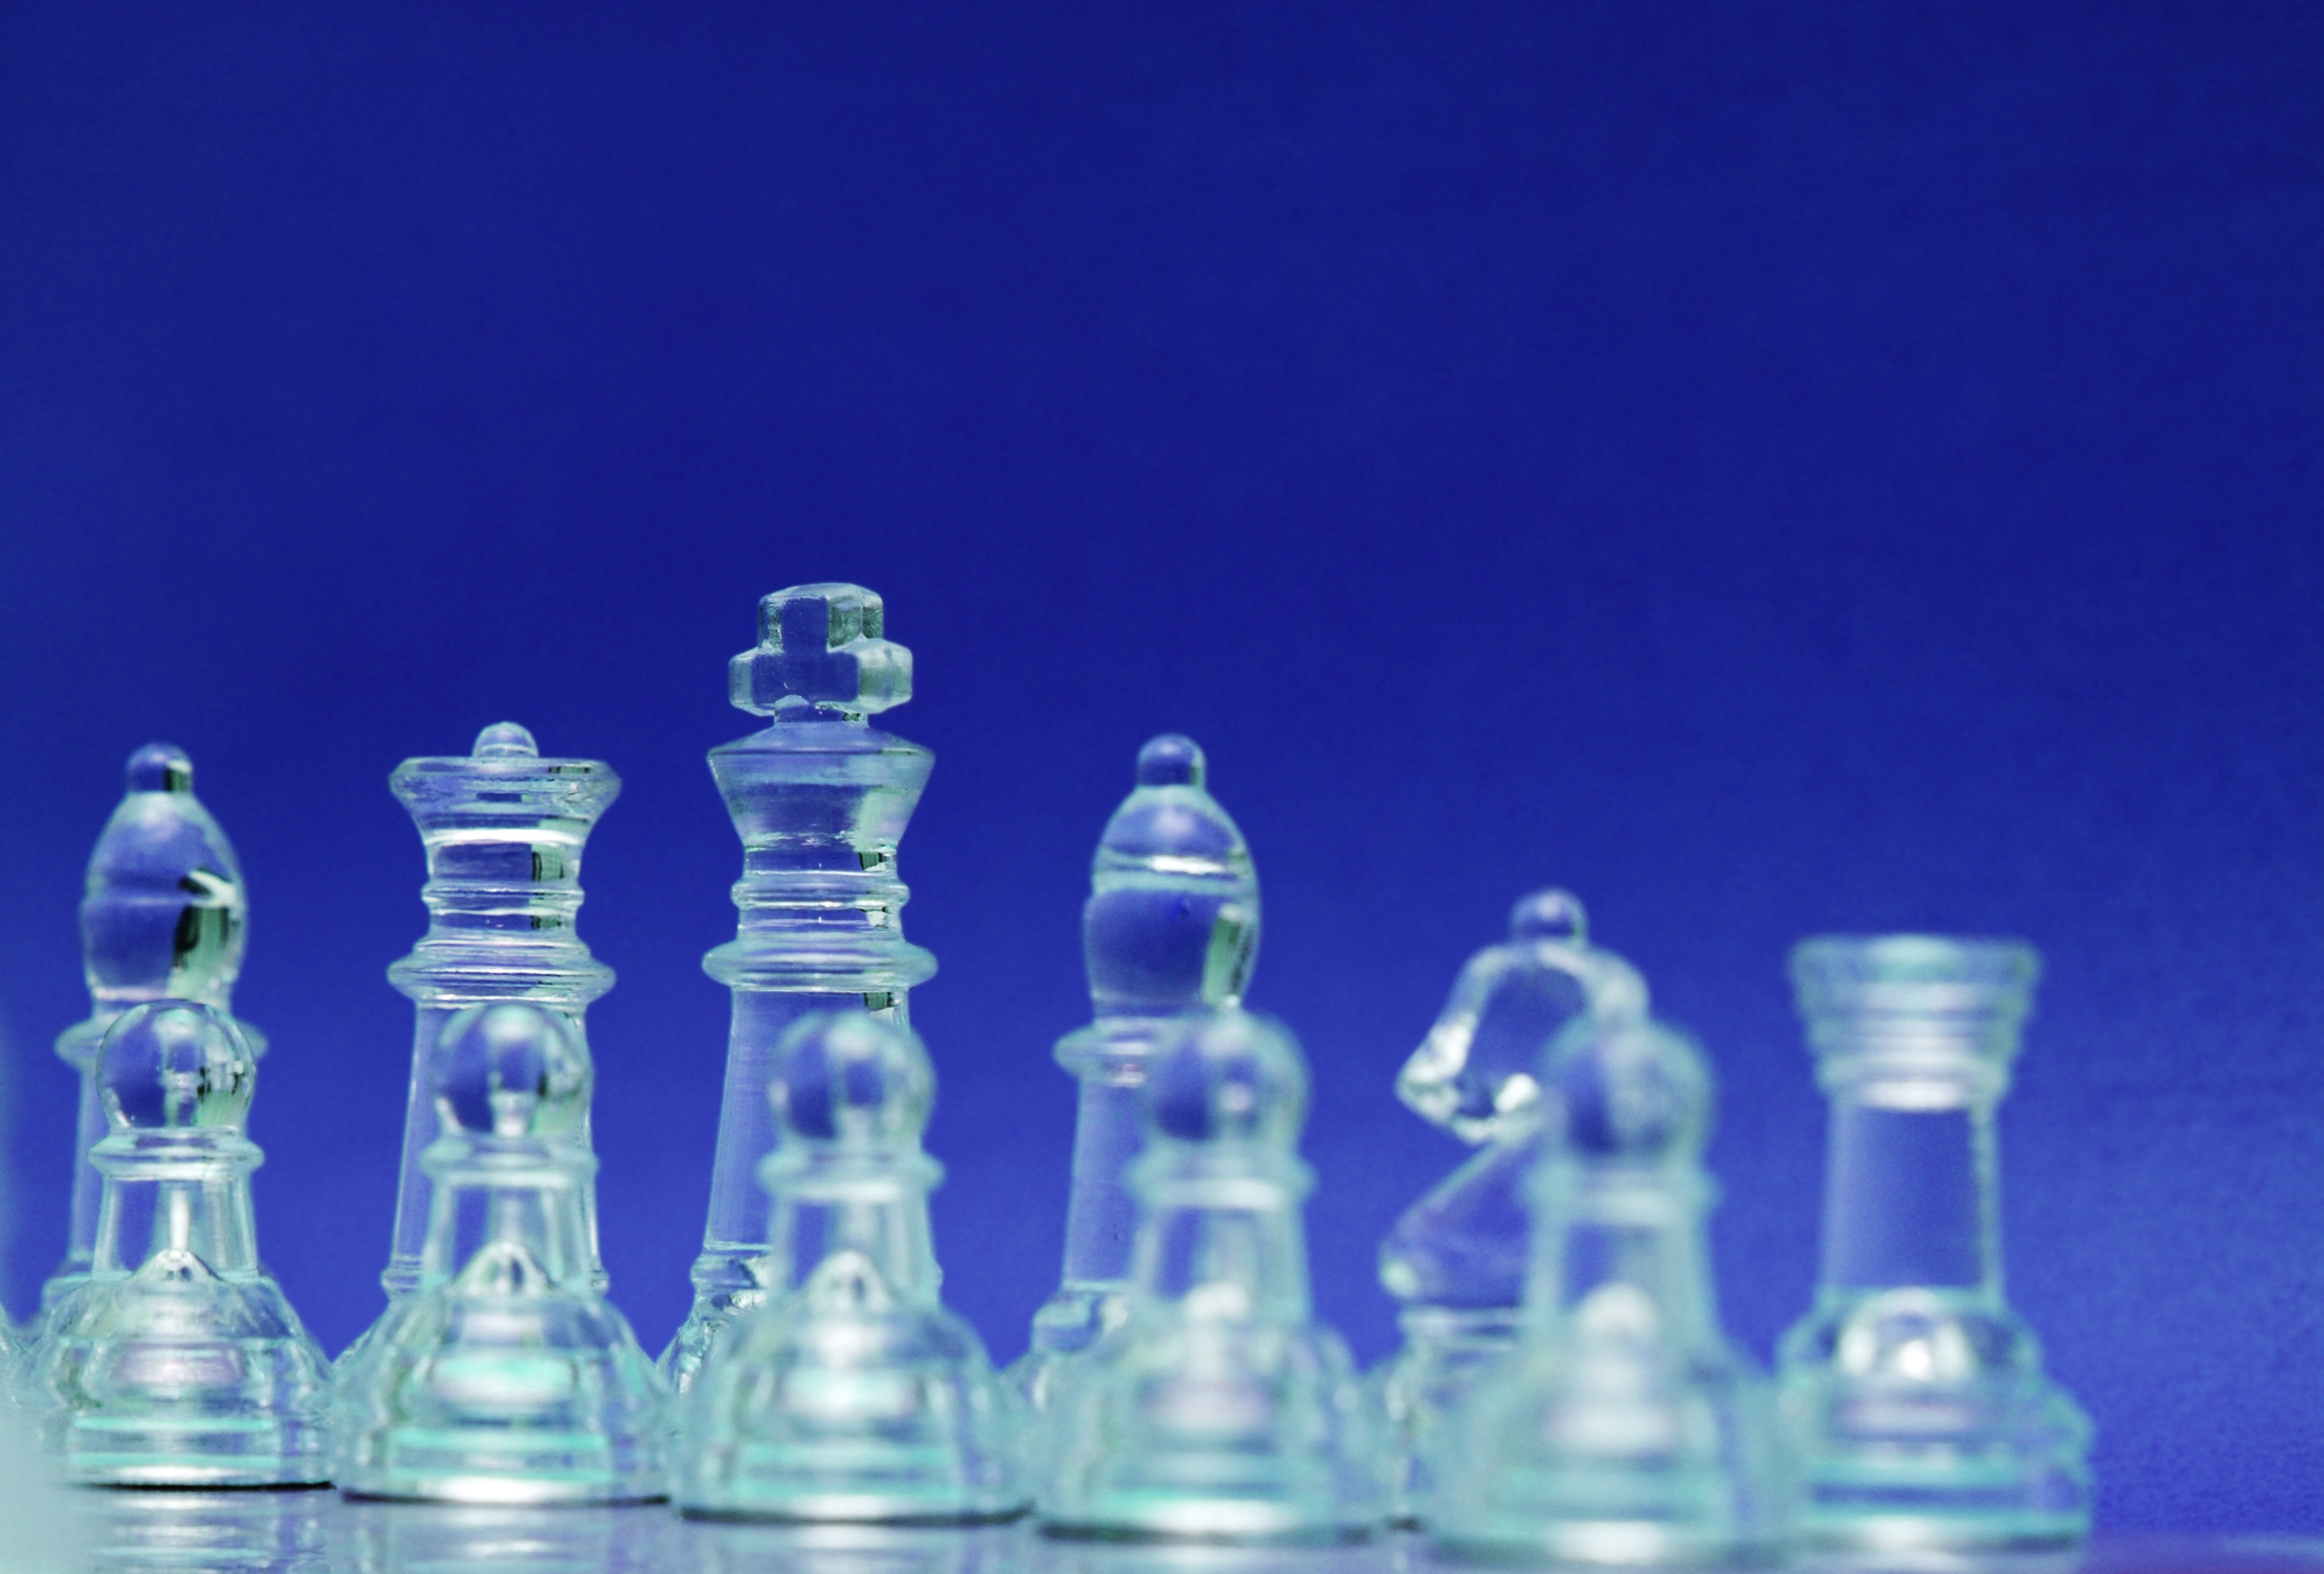 glass chess figures over the blue background